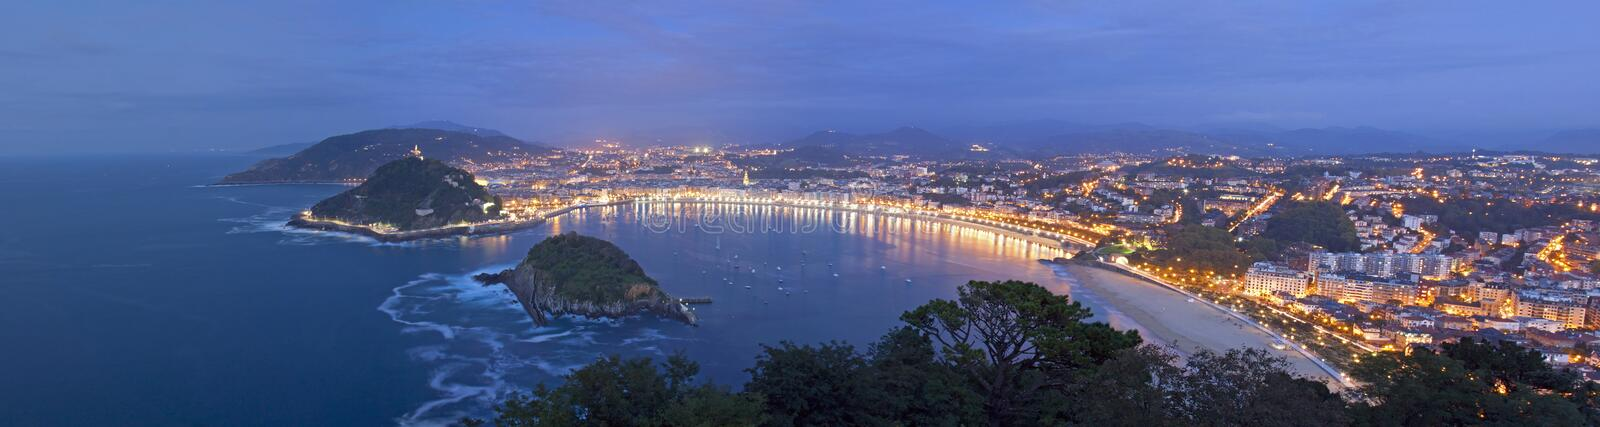 Download Concha Bay In The City Of Donostia, Gipuzkoa Royalty Free Stock Images - Image: 21344319